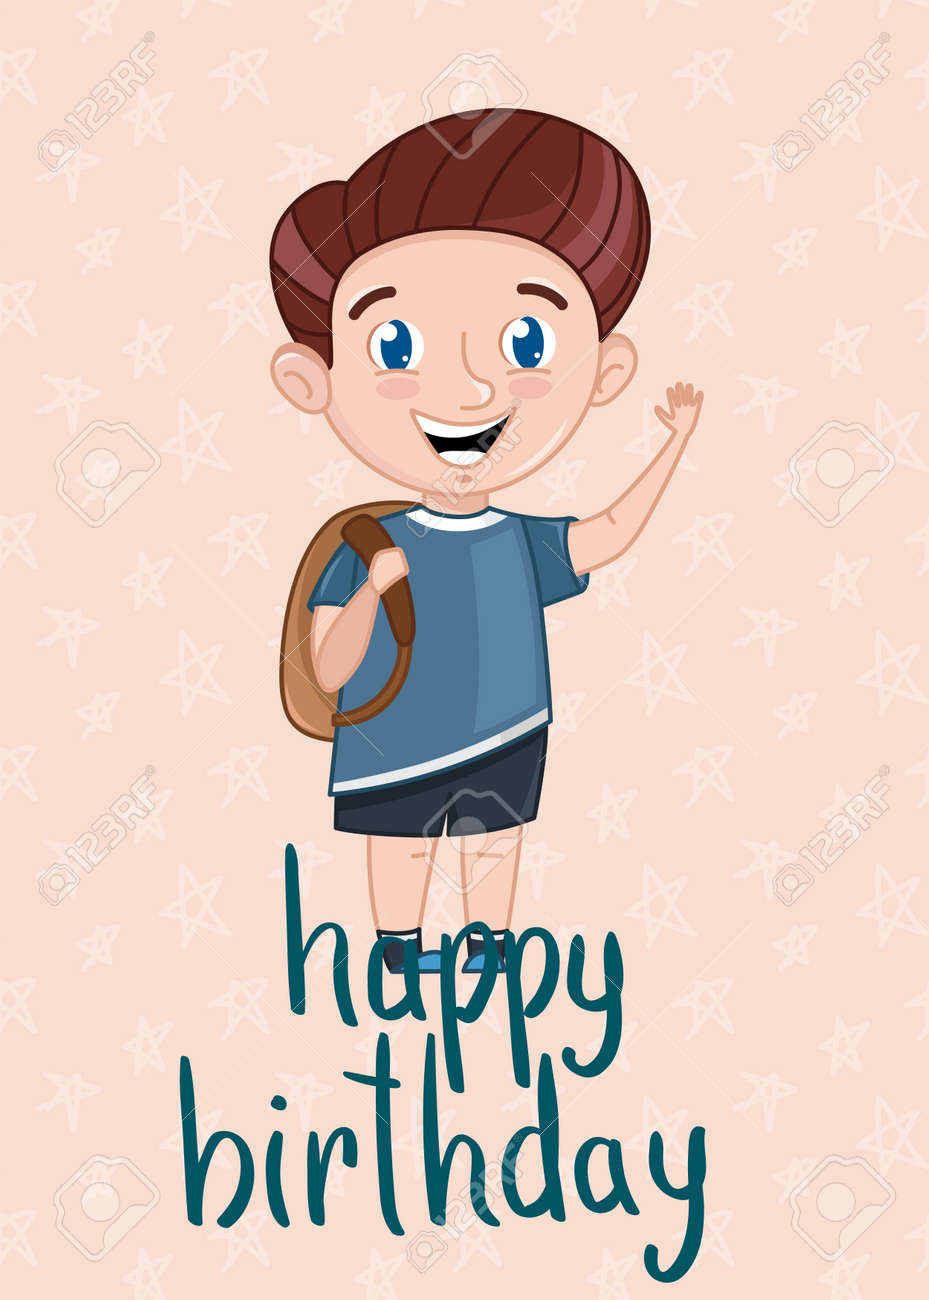 Happy Birthday Kids Postcard Template With Smiling Little Boy - Event postcard template